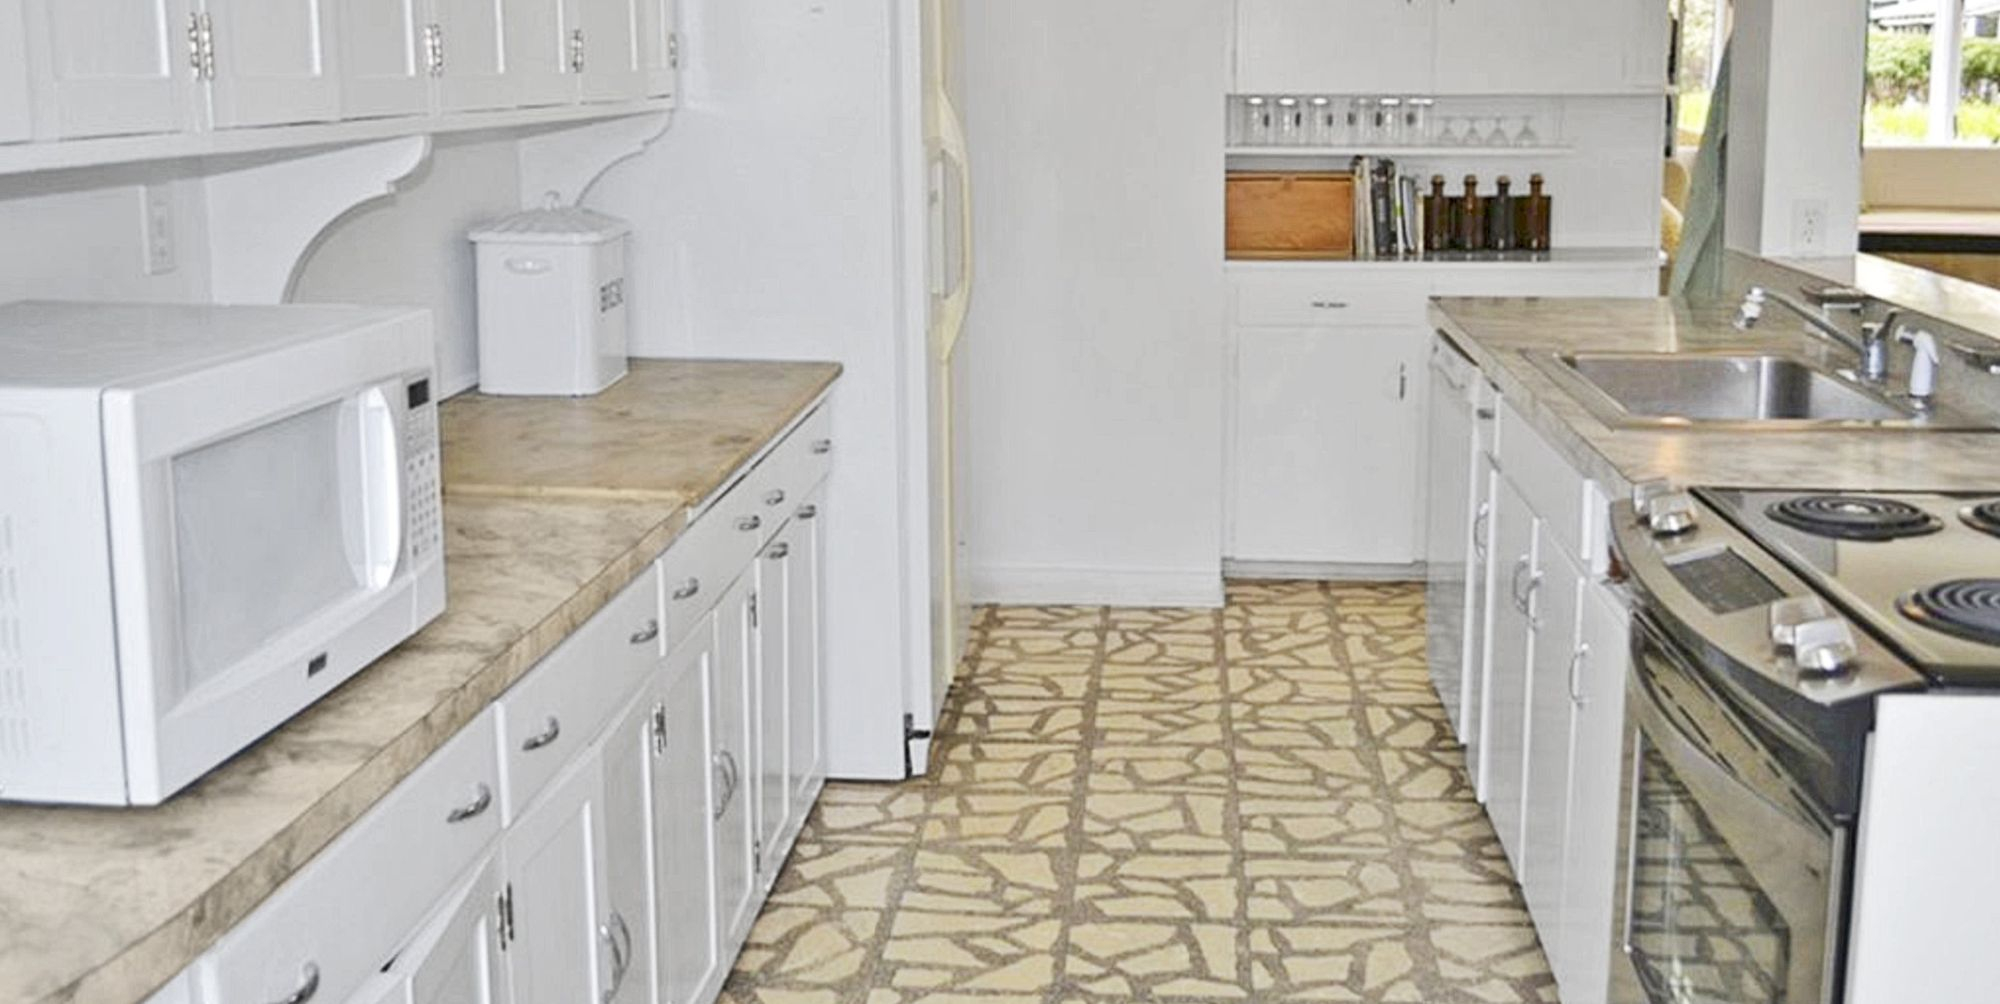 This Farmhouse's Kitchen Makeover Will Make You Want to Redo Yours ASAP